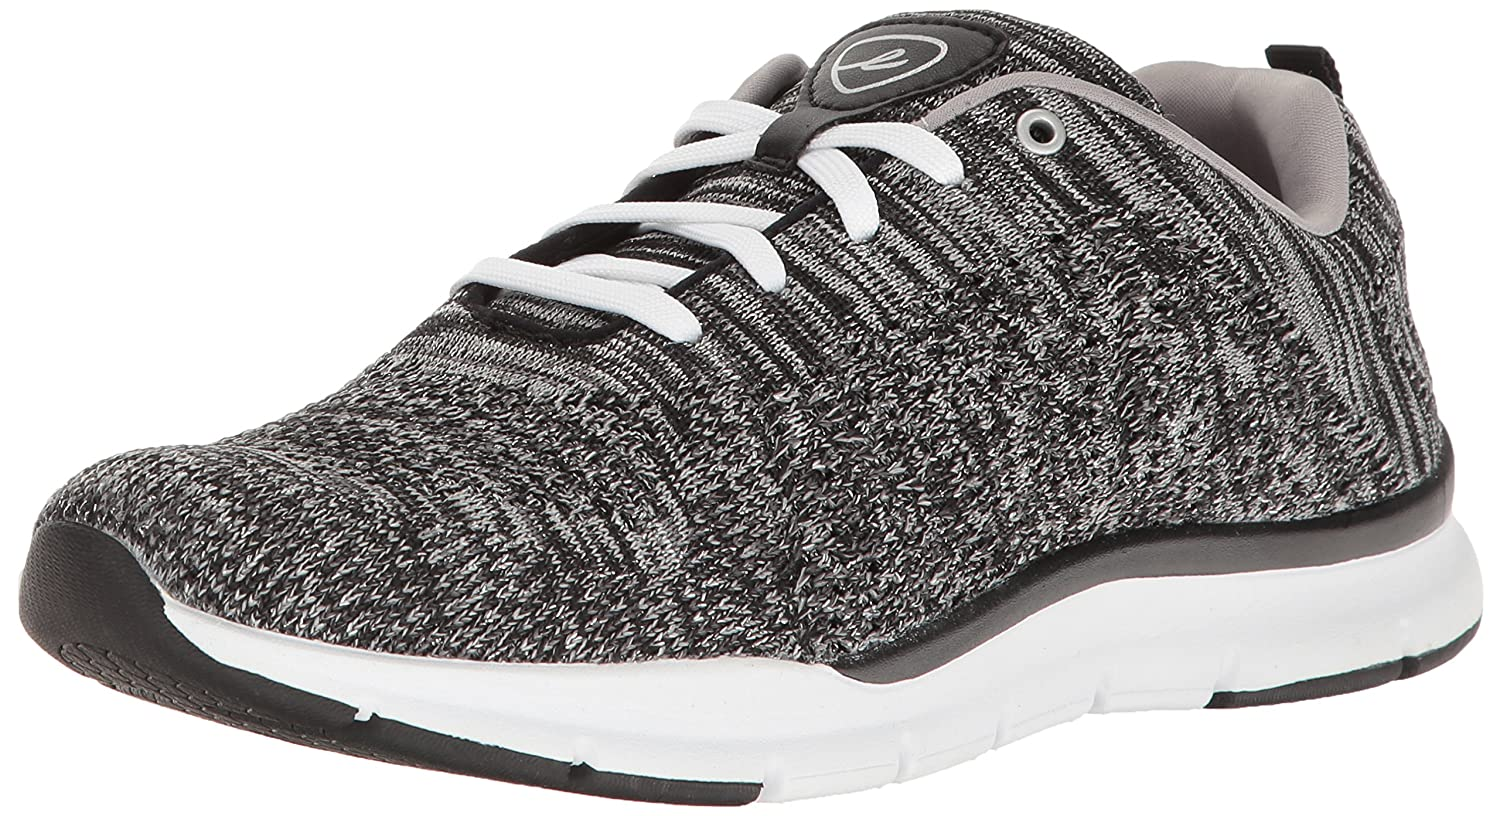 Easy Spirit Women's Ferran2 Fashion Sneaker B01N0EH7VC 8 W US|Black/Multi Fabric